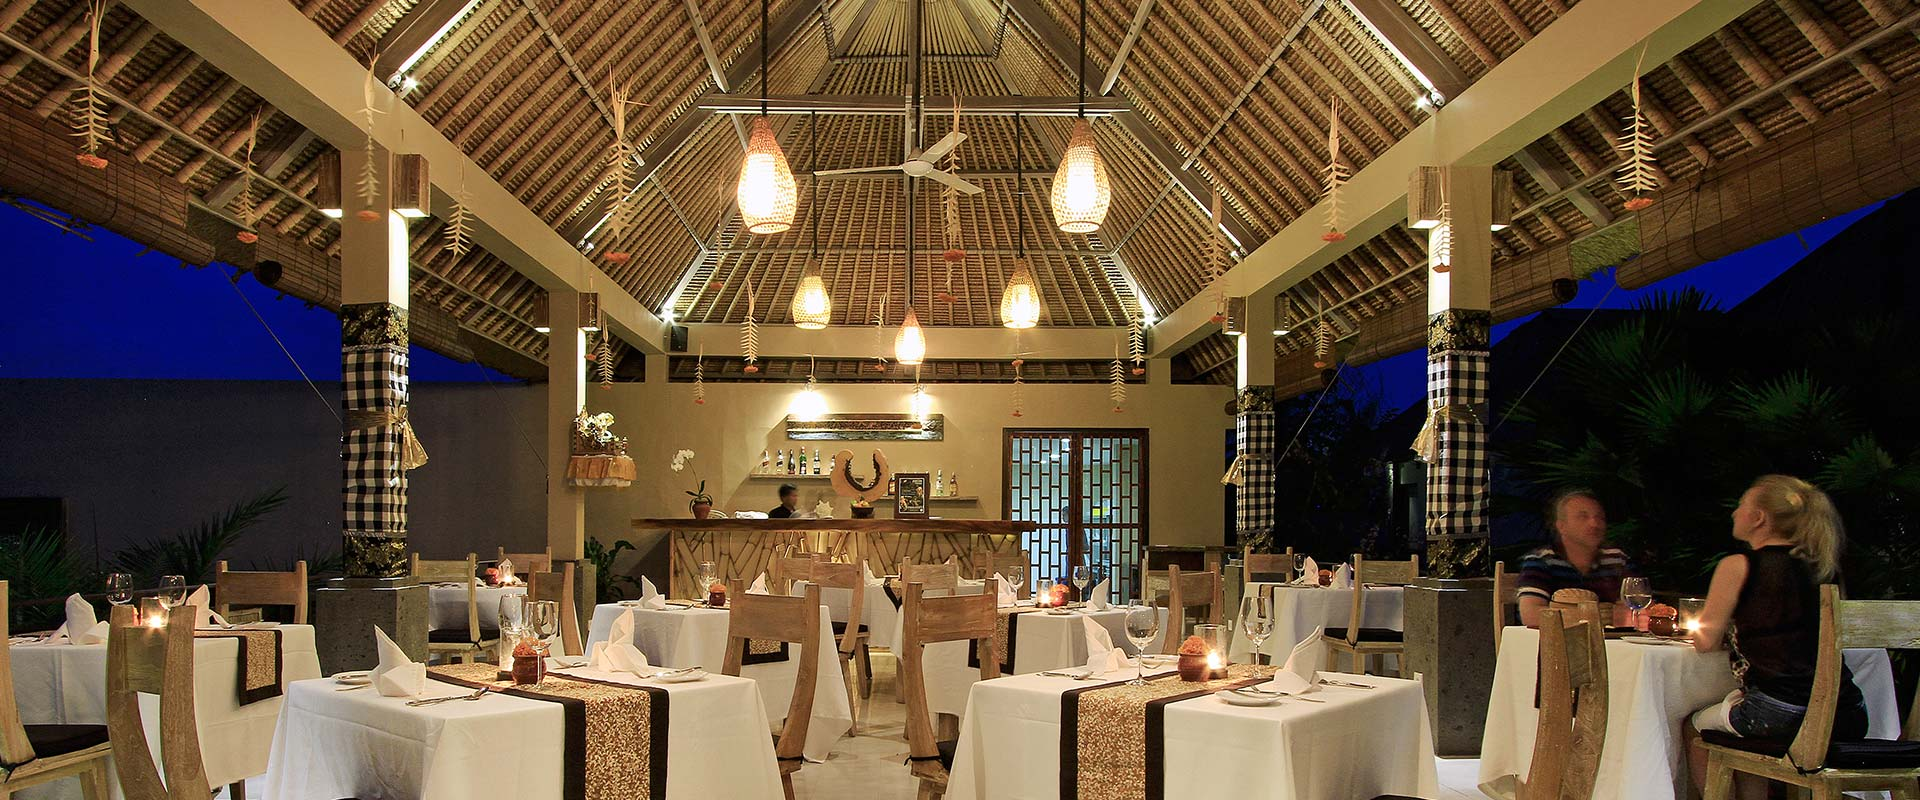 The Kumbuh Restaurant Ubud